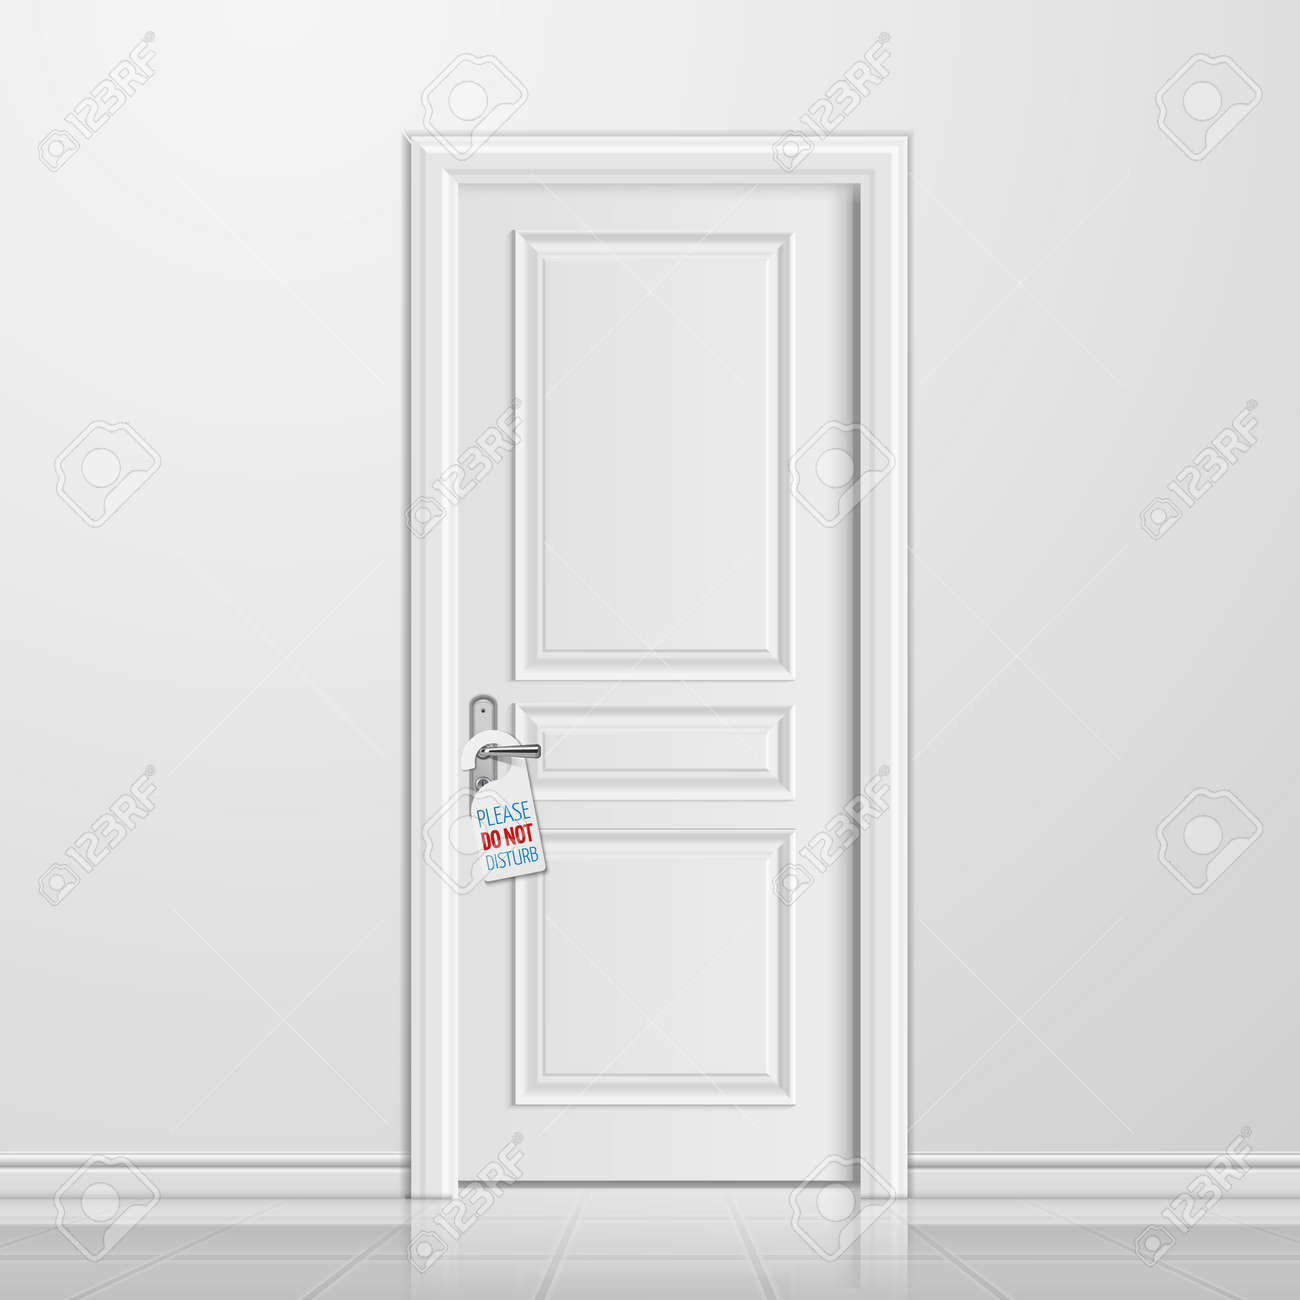 Vector realistic closed white entrance door with do not disturb blank. Interior with door illustration - 168217686